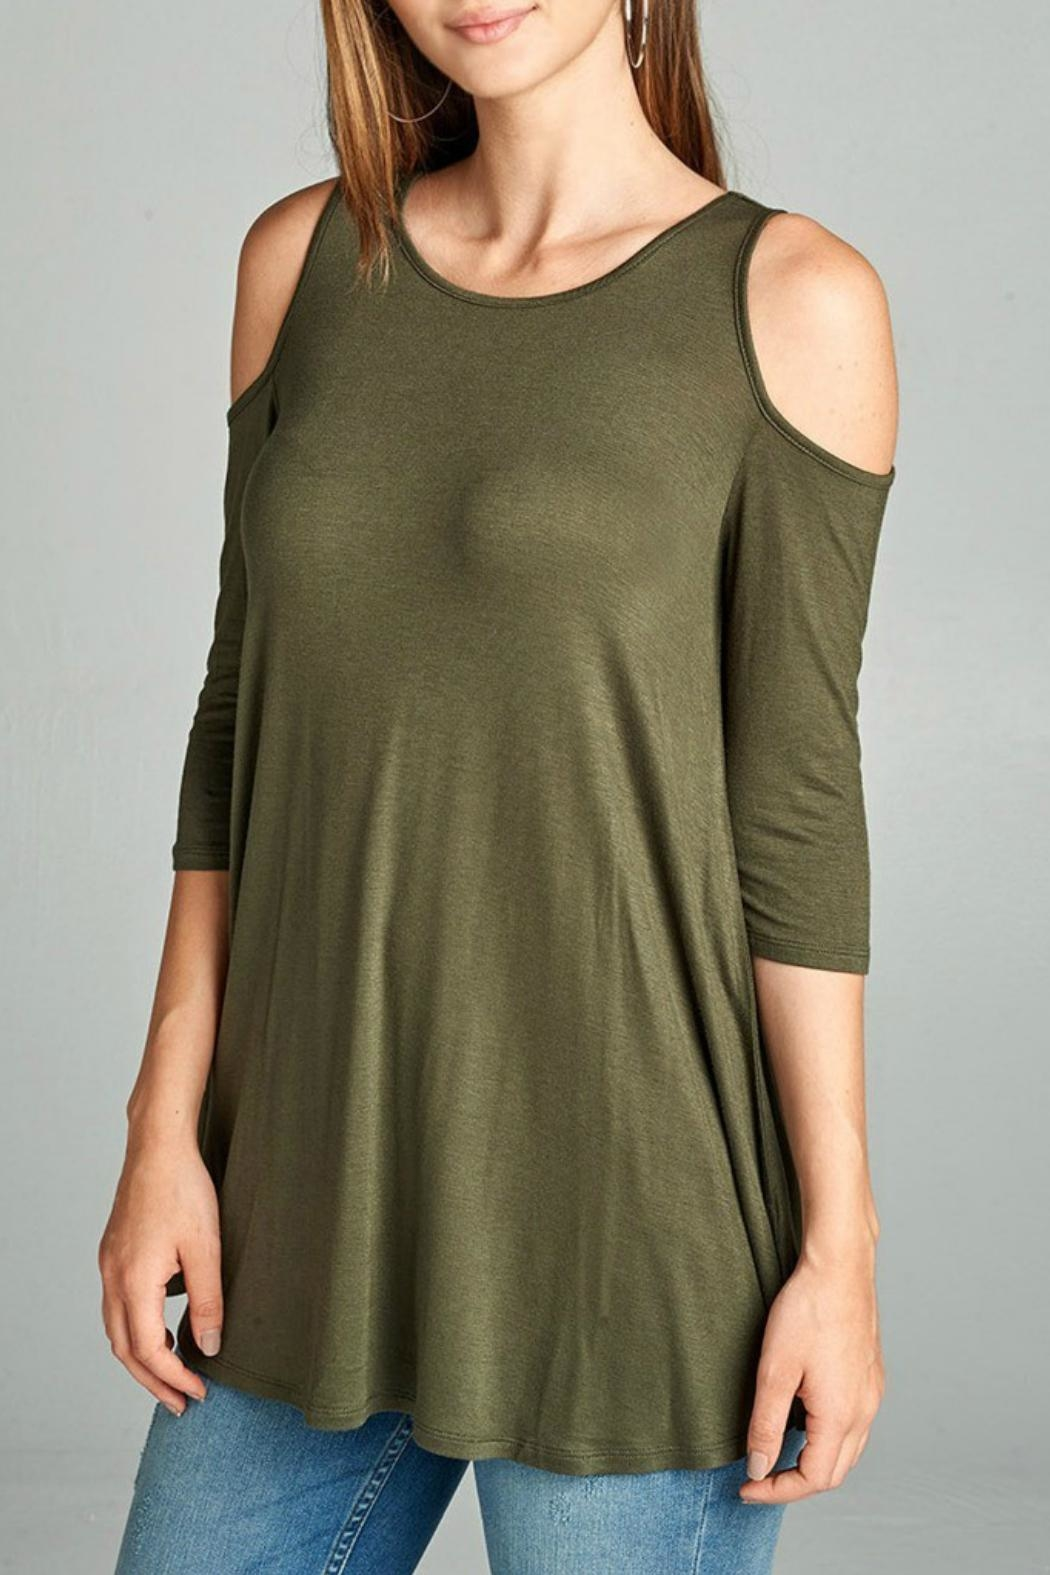 Active Basic Basic Cold Shoulder Top - Main Image